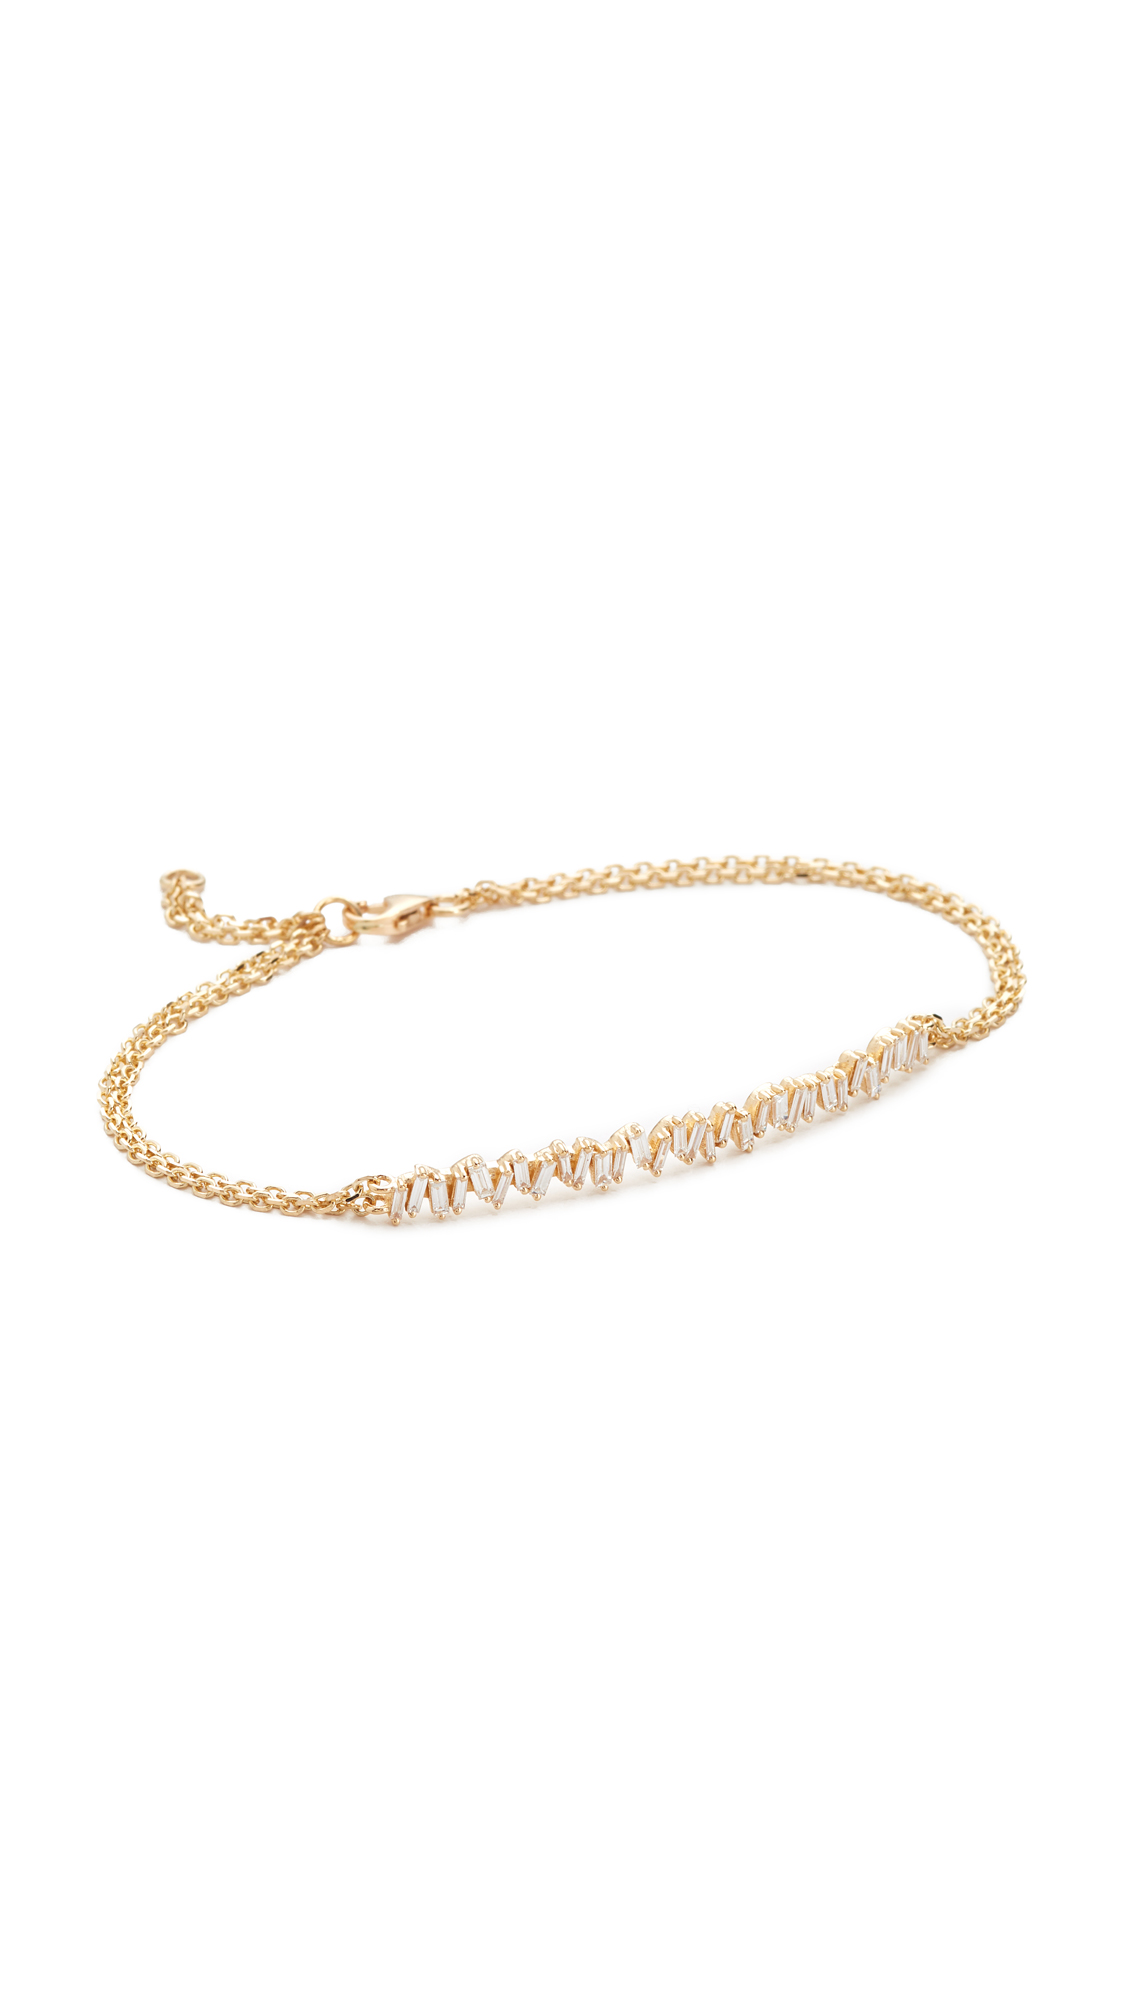 Suzanne Kalan Fireworks 18k Gold Vertical Diamond Baguette Bracelet In Yellow Gold